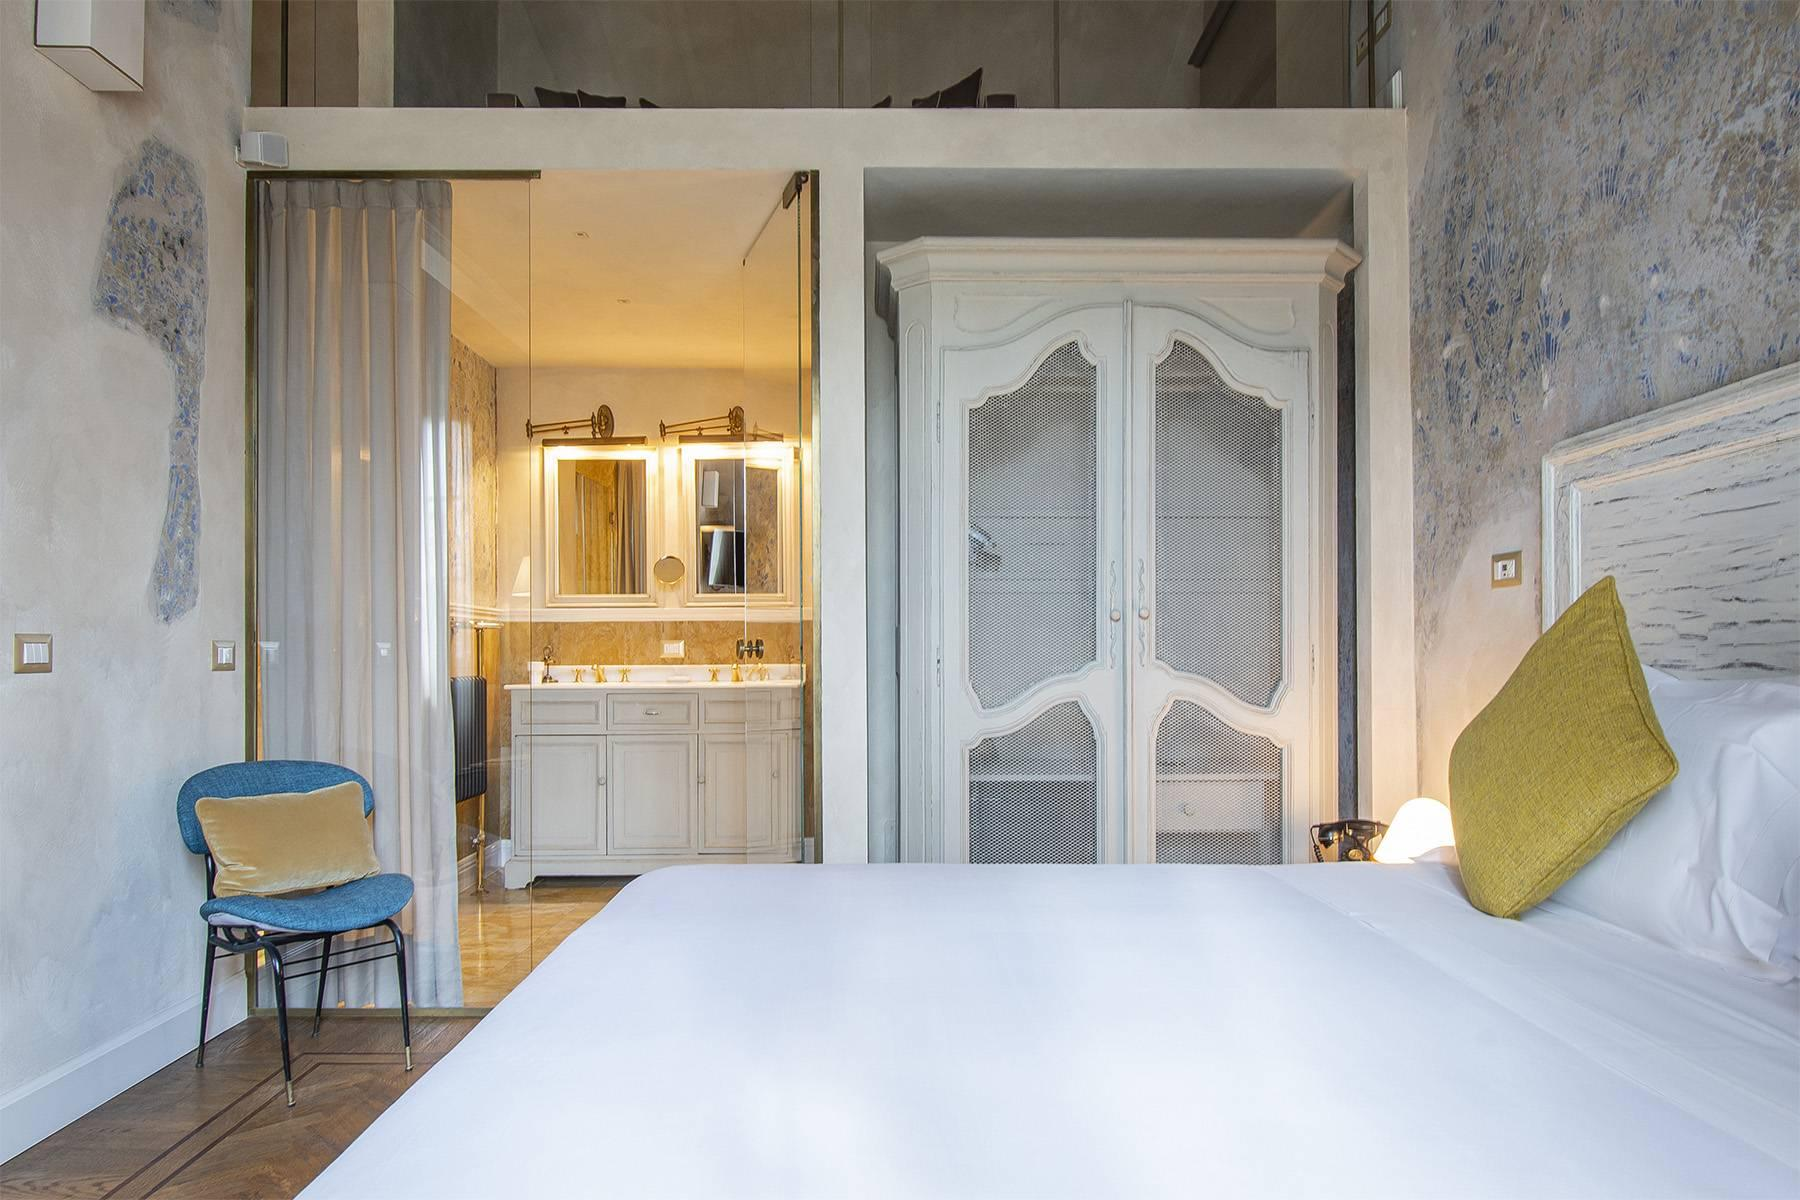 Amazing 600sqm turn-key boutique hotel in the heart of town - 20